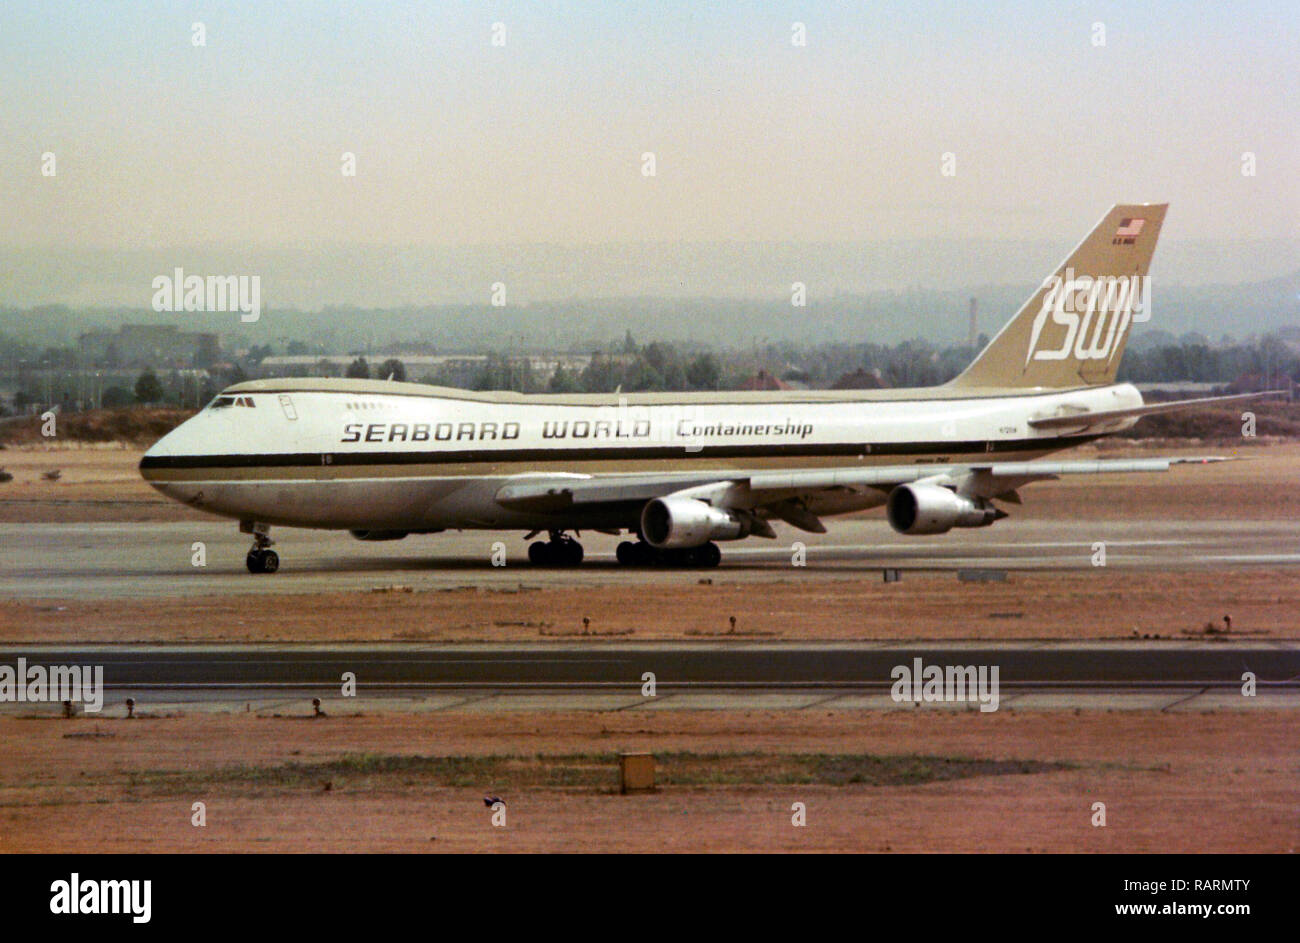 Seaboard World Boeing 747 Heathrow 1979 - Stock Image